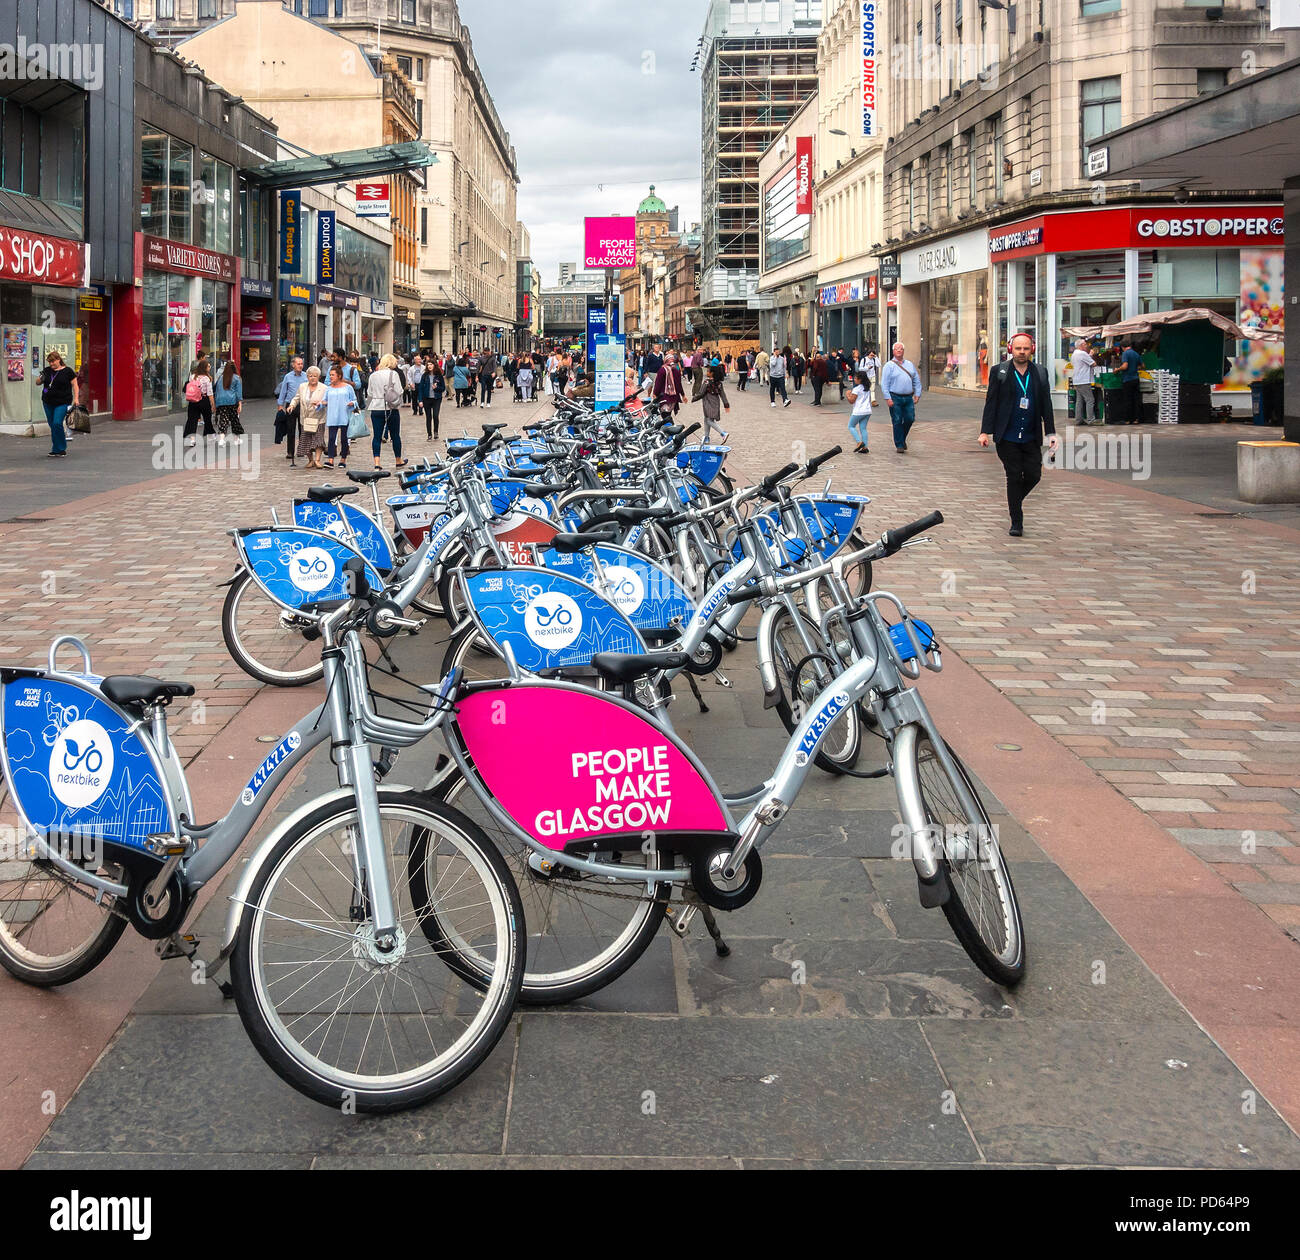 Nextbike bike sharing hire point in the pedestrianised part of Argyle Street, in Glasgow city centre, Scotland. - Stock Image